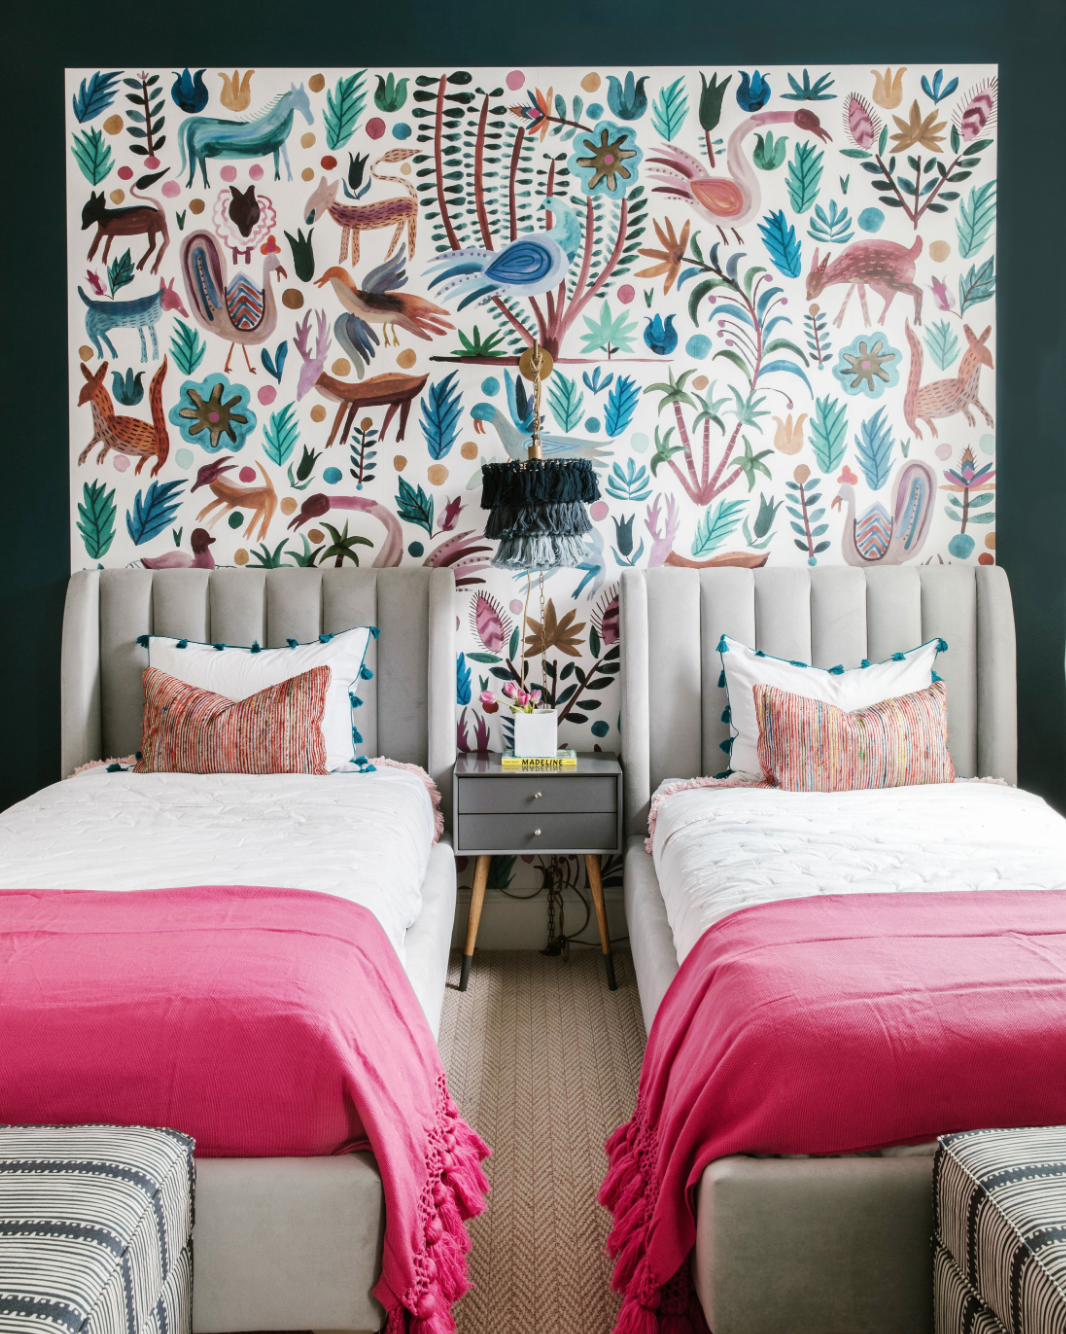 Here's How to Go Boho in the Bedroom (Hint: It's All About the Lighting)